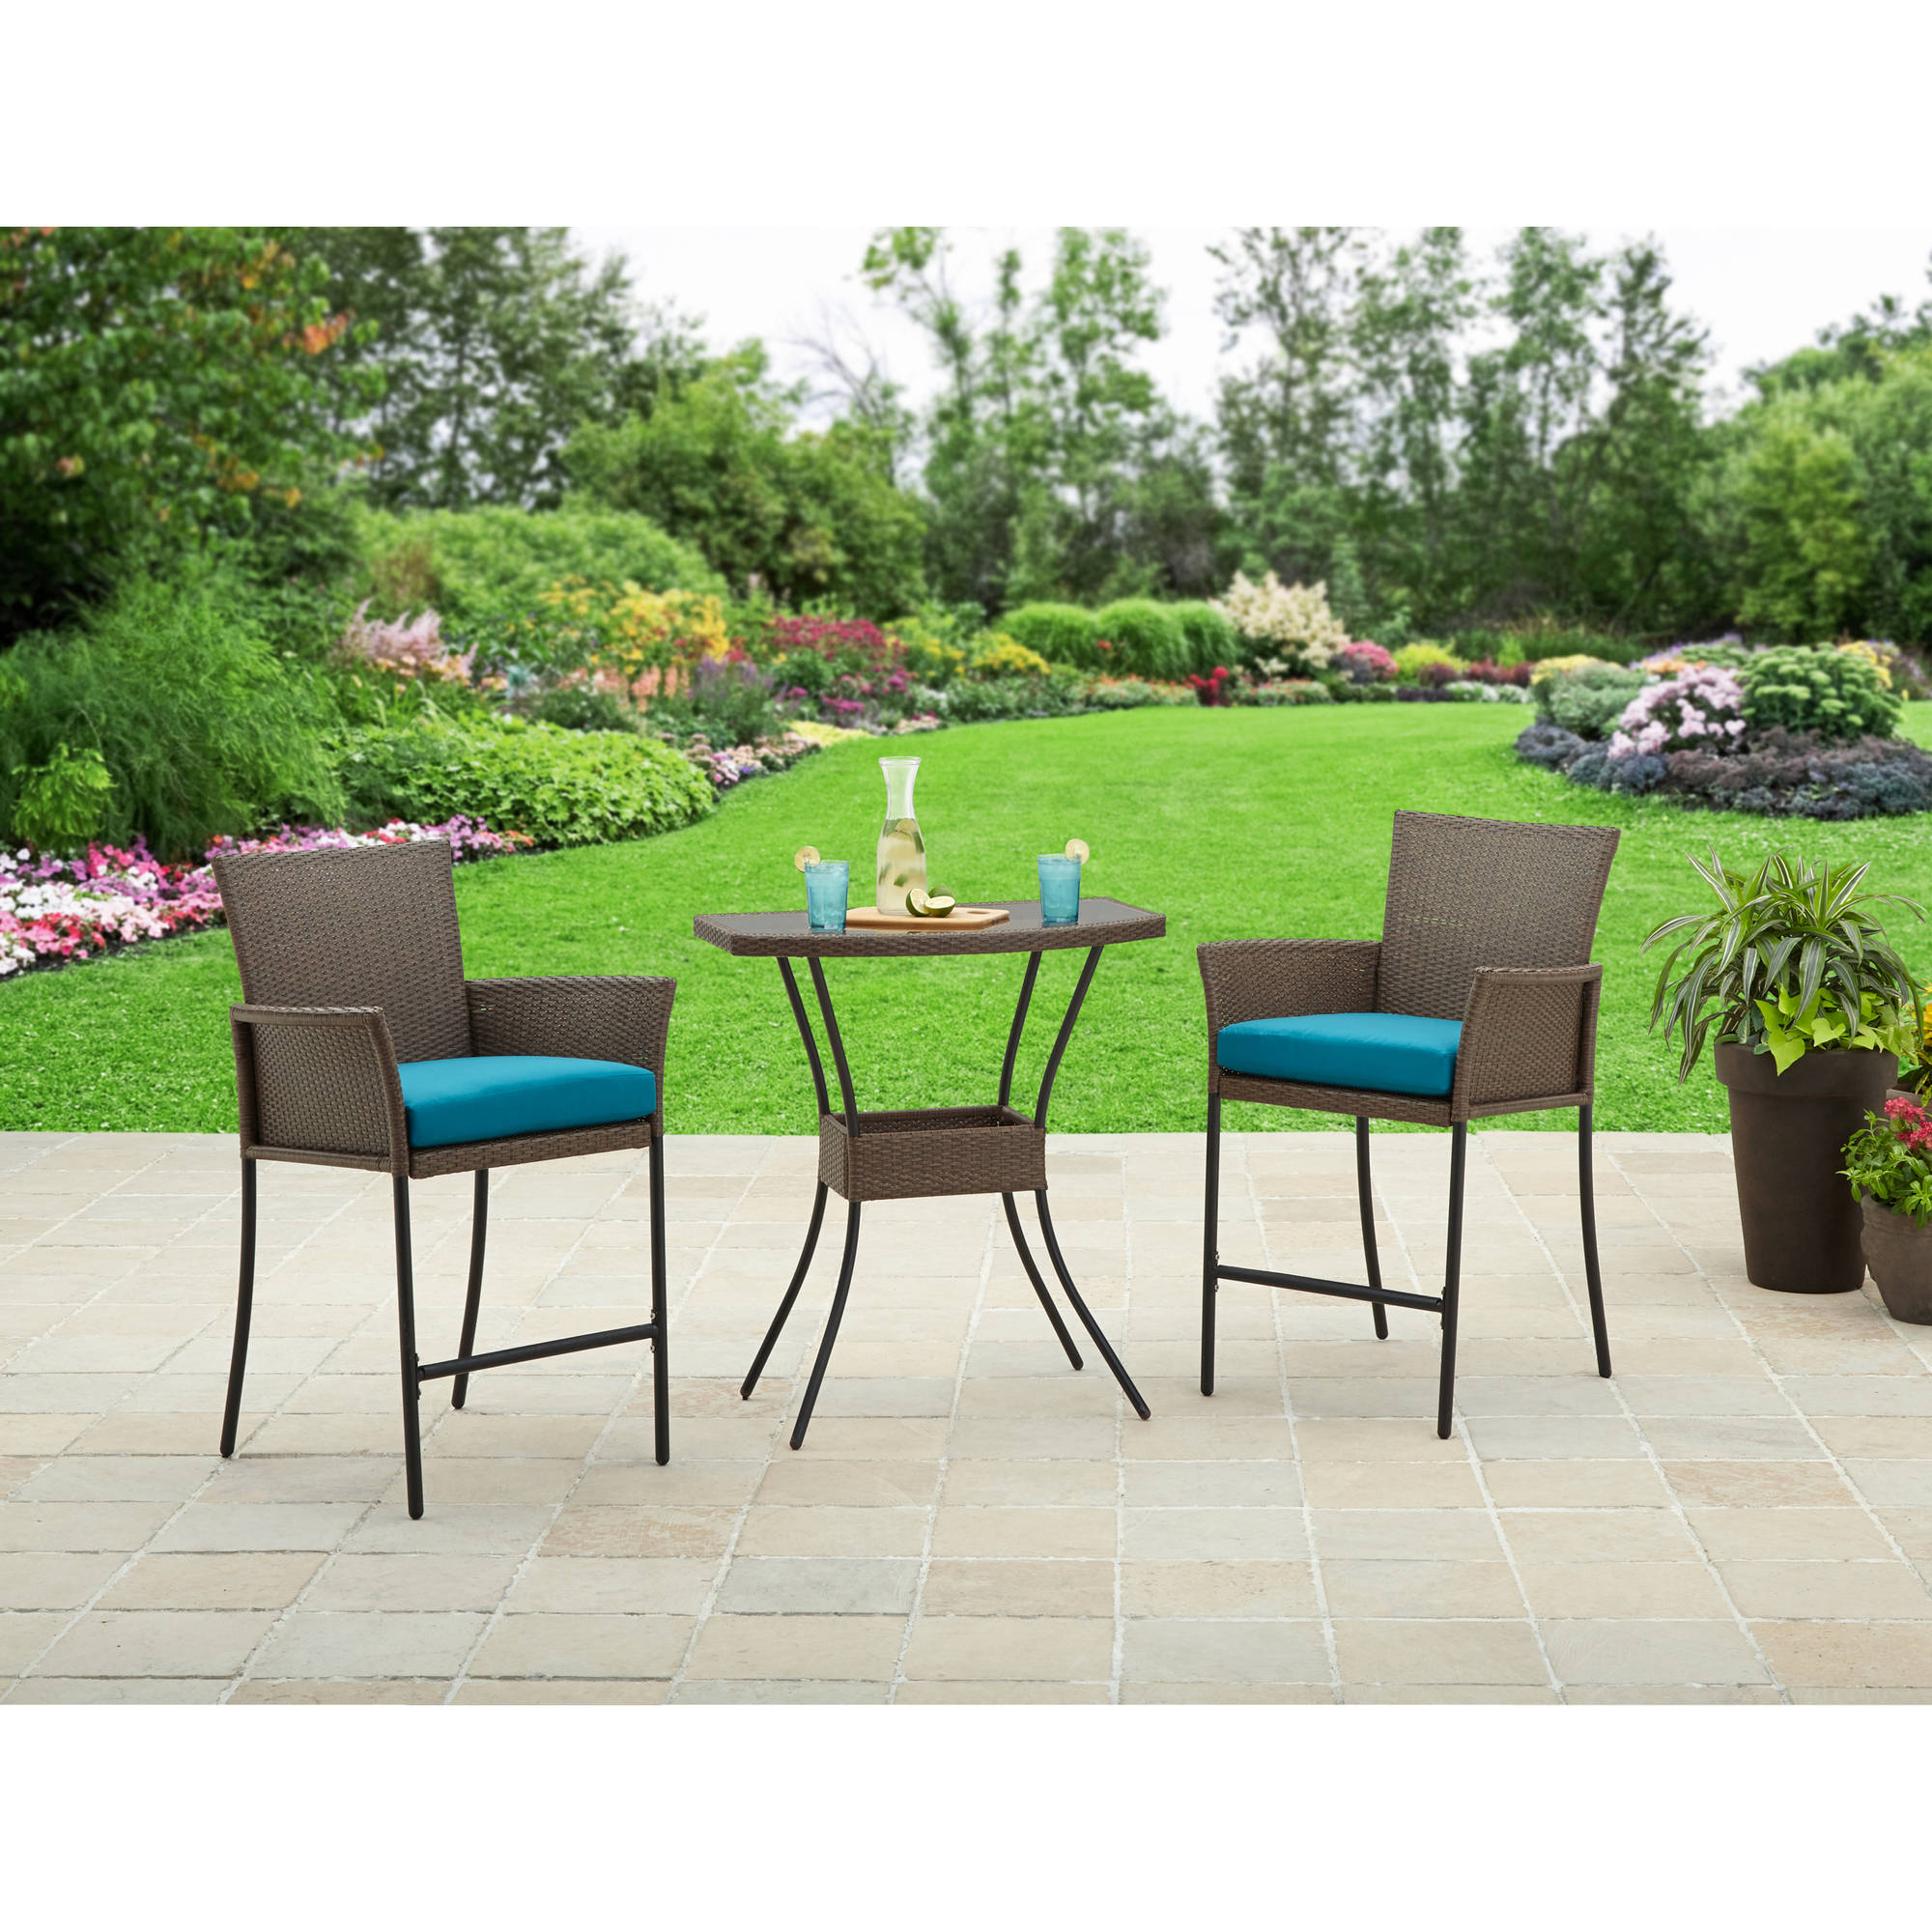 Better homes and gardens fairfield bay 3 piece balcony bistro set